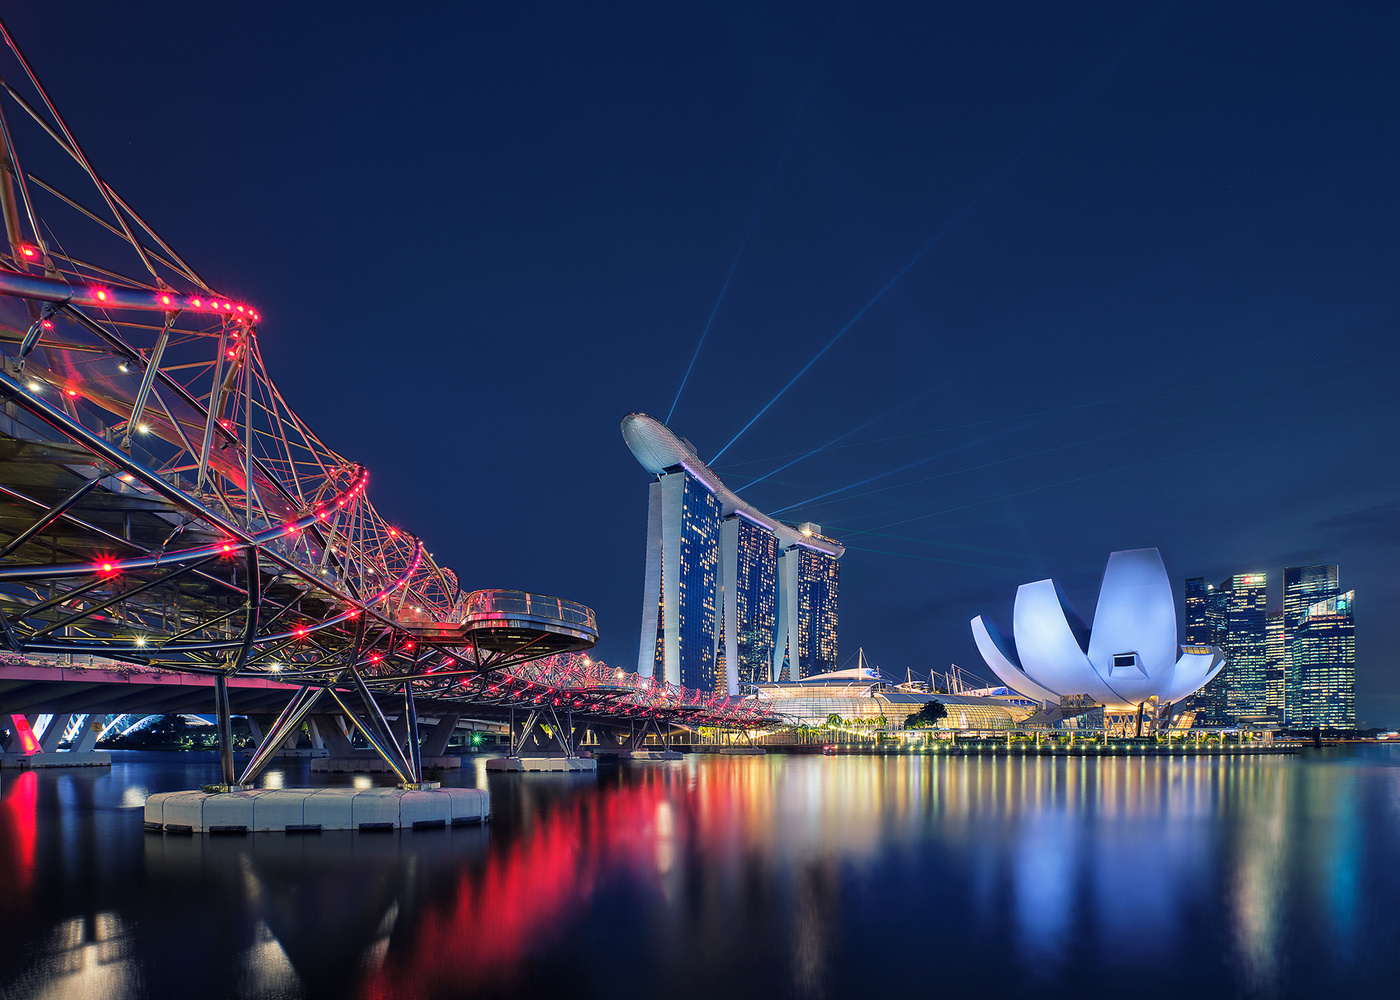 Showtime in Singapore by Lionel Fellay